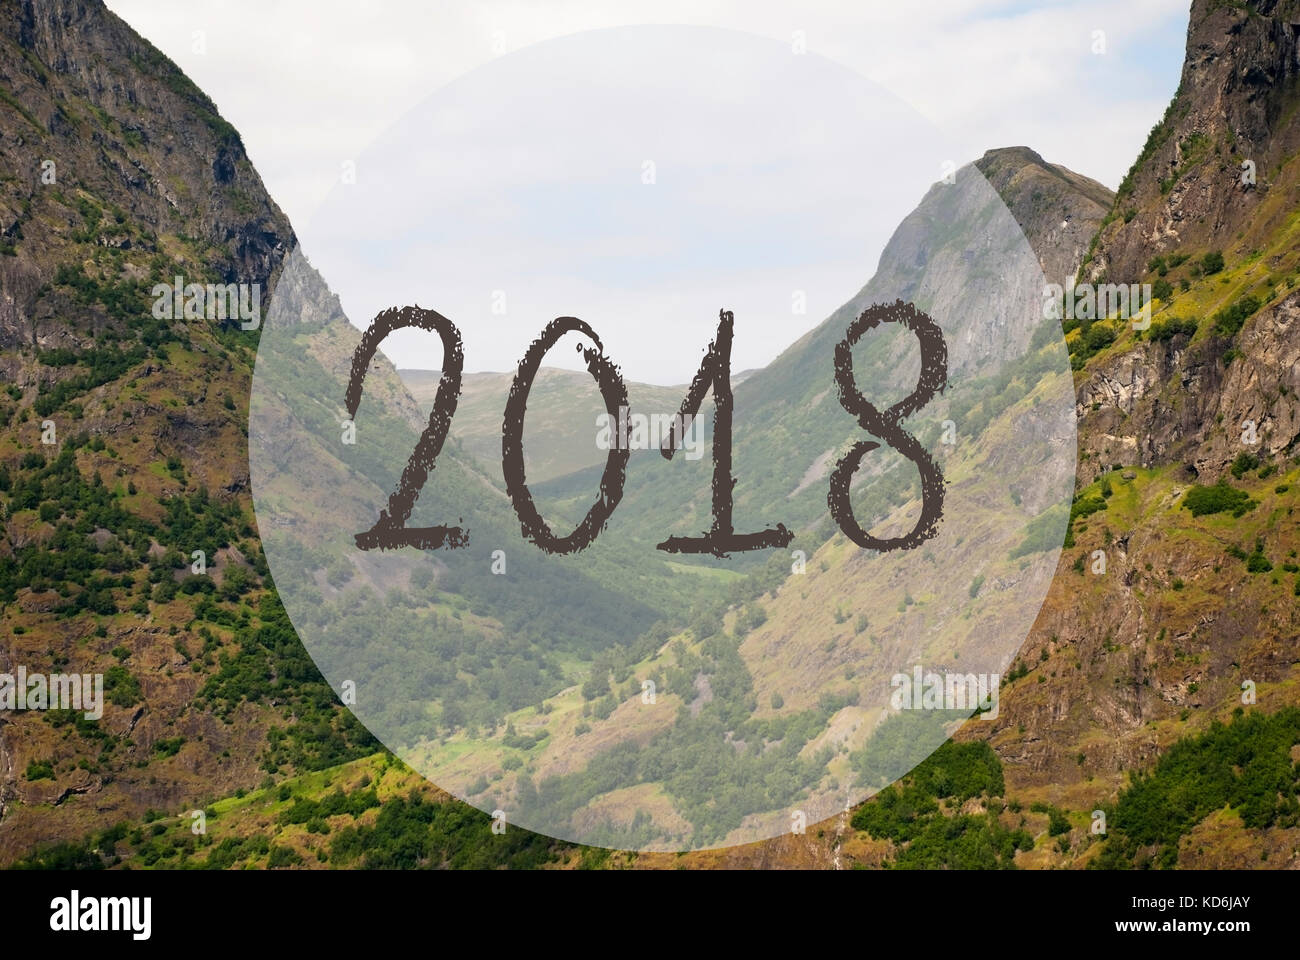 text 2018 for happy new year greetings valley with mountains in norway peaceful landscape scenery with grass trees and rocks